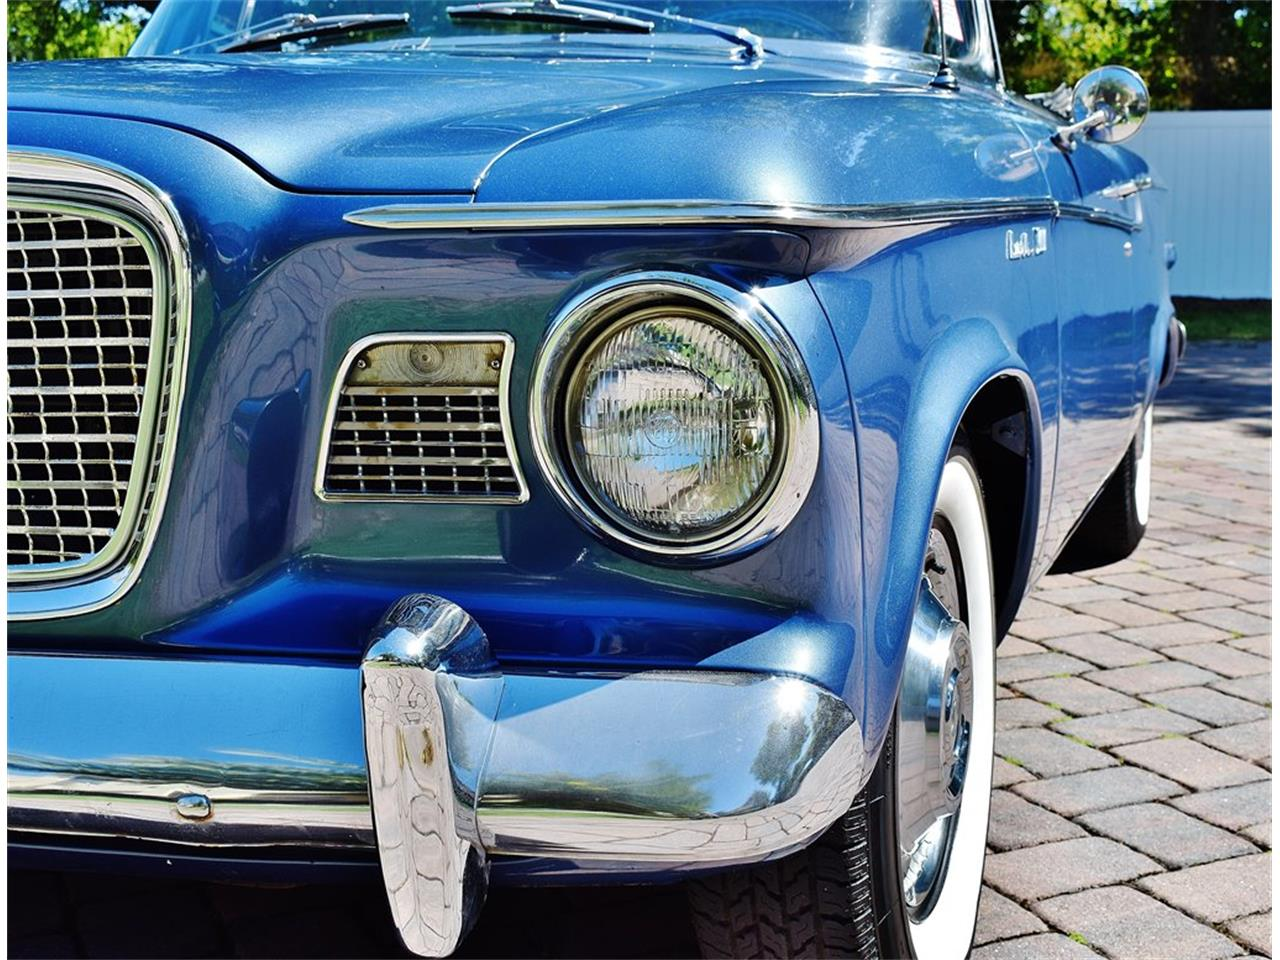 1960 Studebaker Lark for sale in Lakeland, FL – photo 23